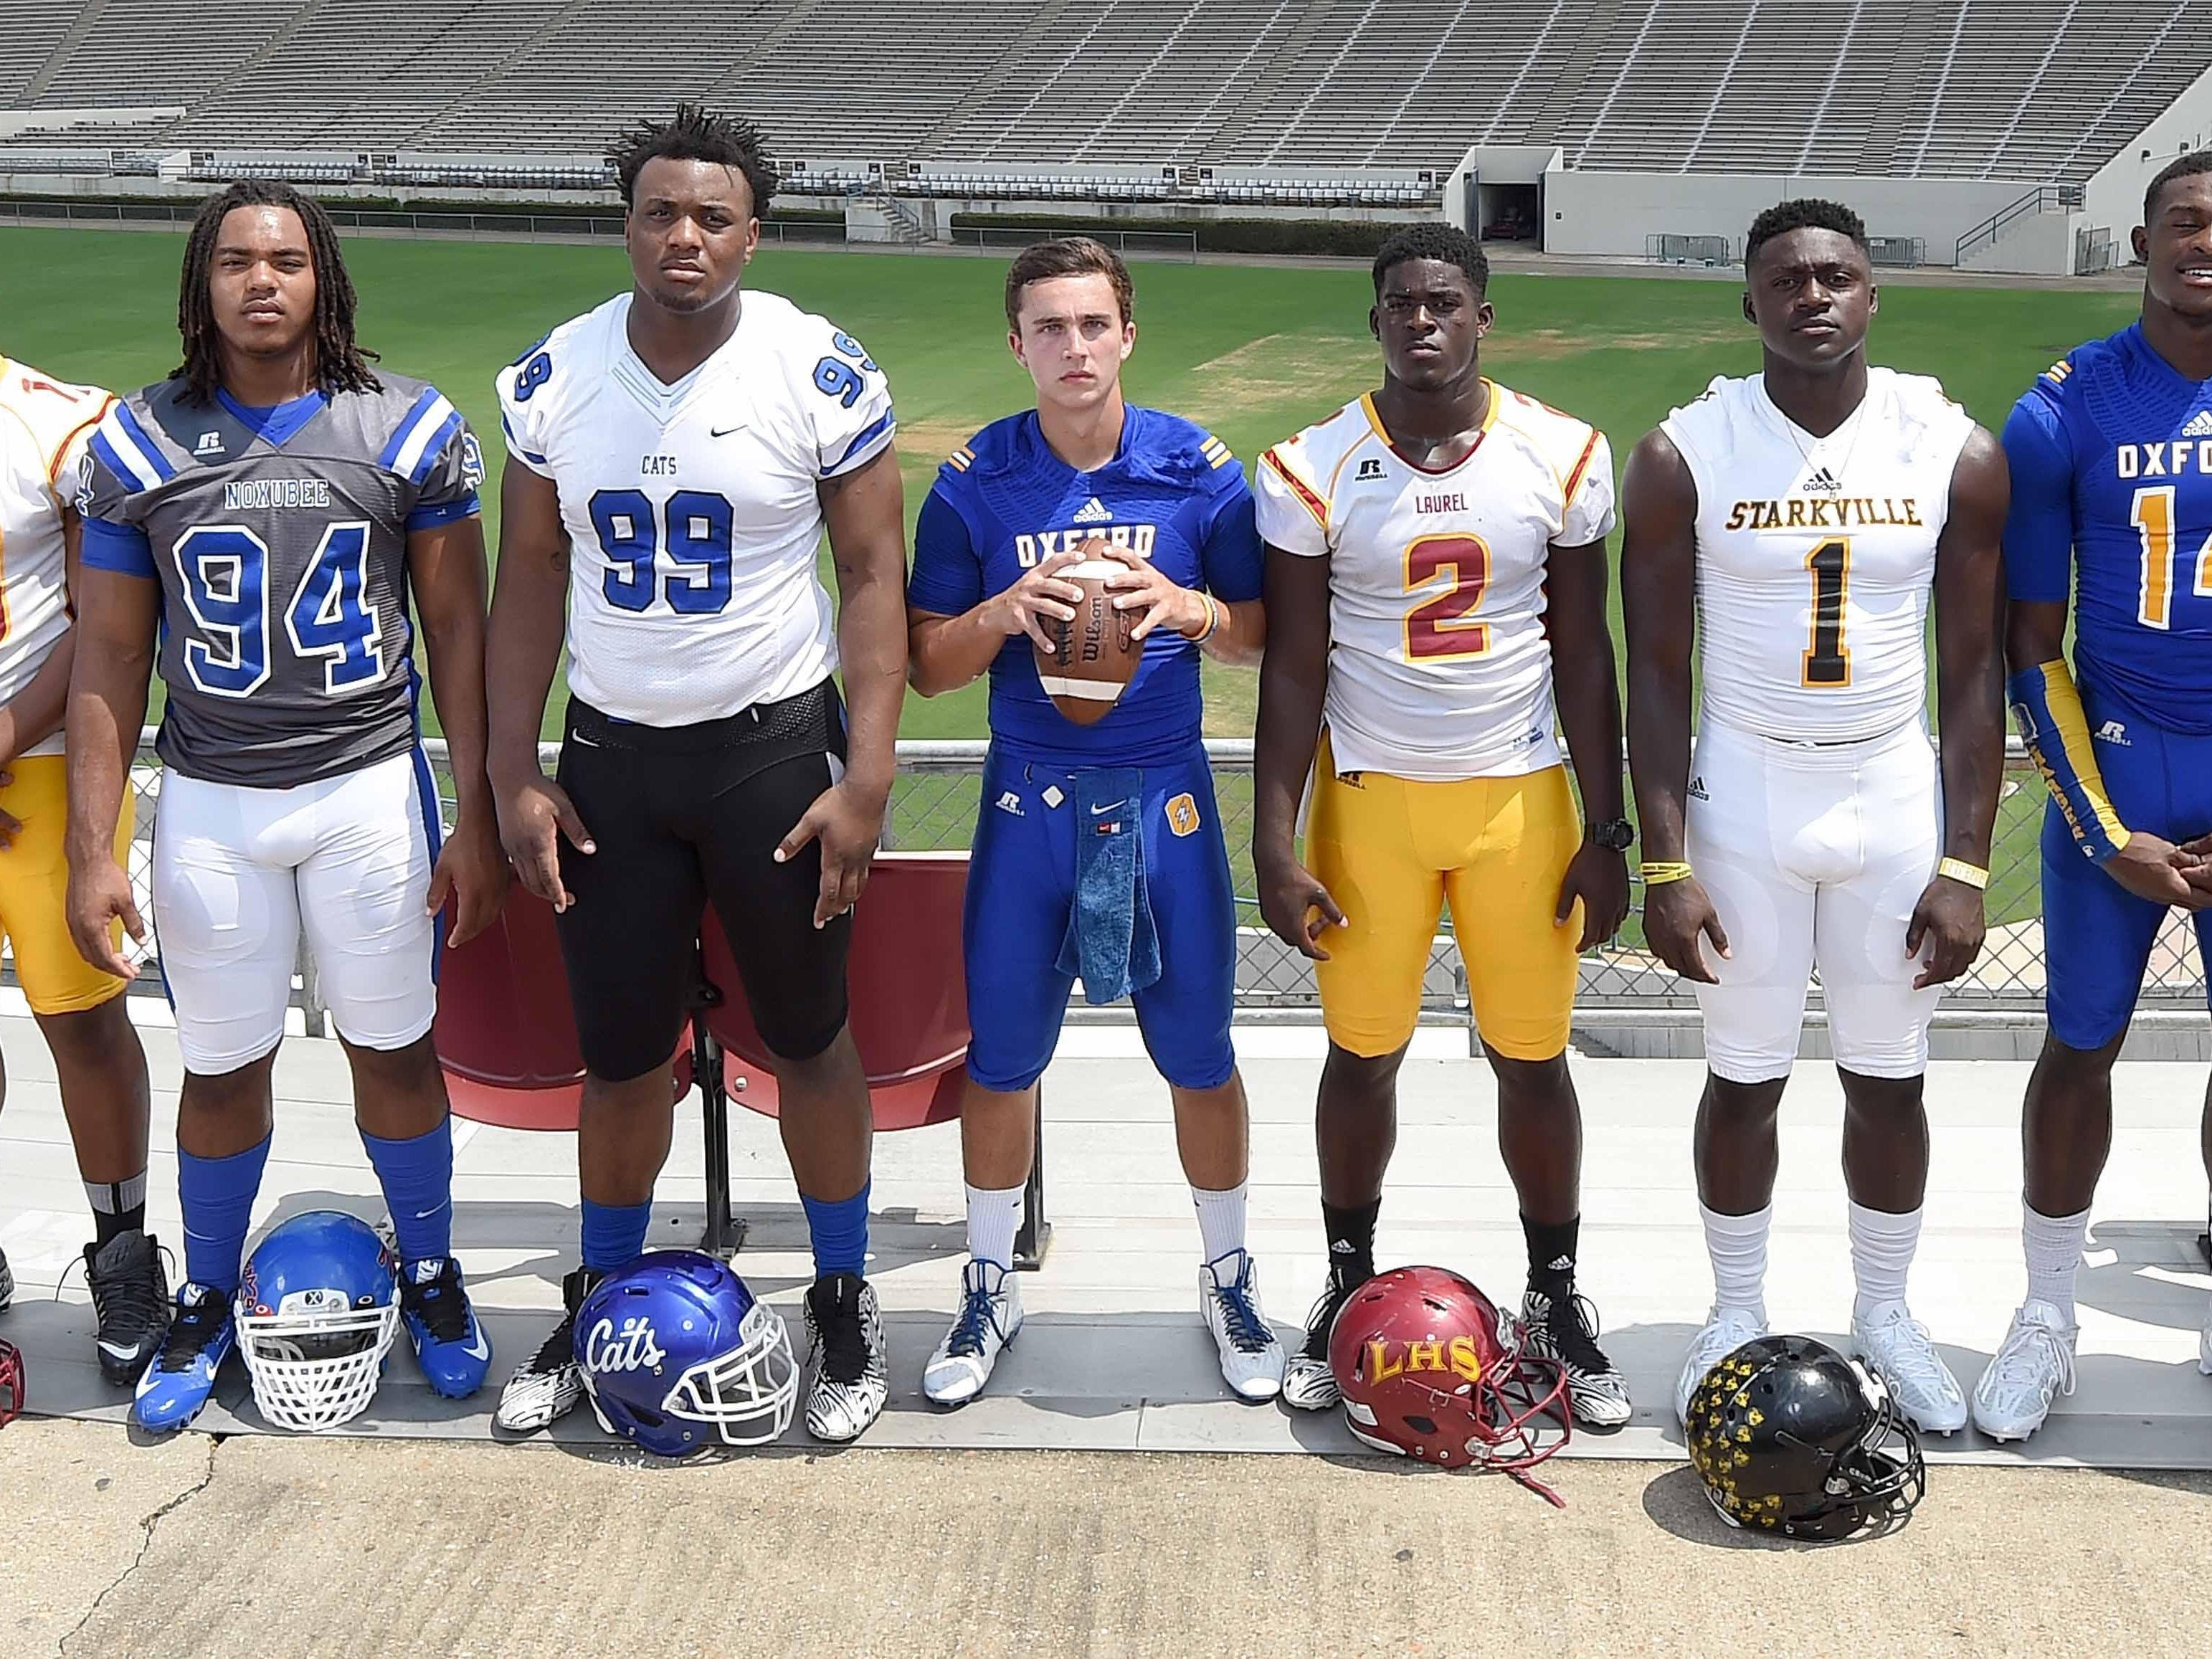 The 2015 Dandy Dozen could be one of the best in the selection's history.